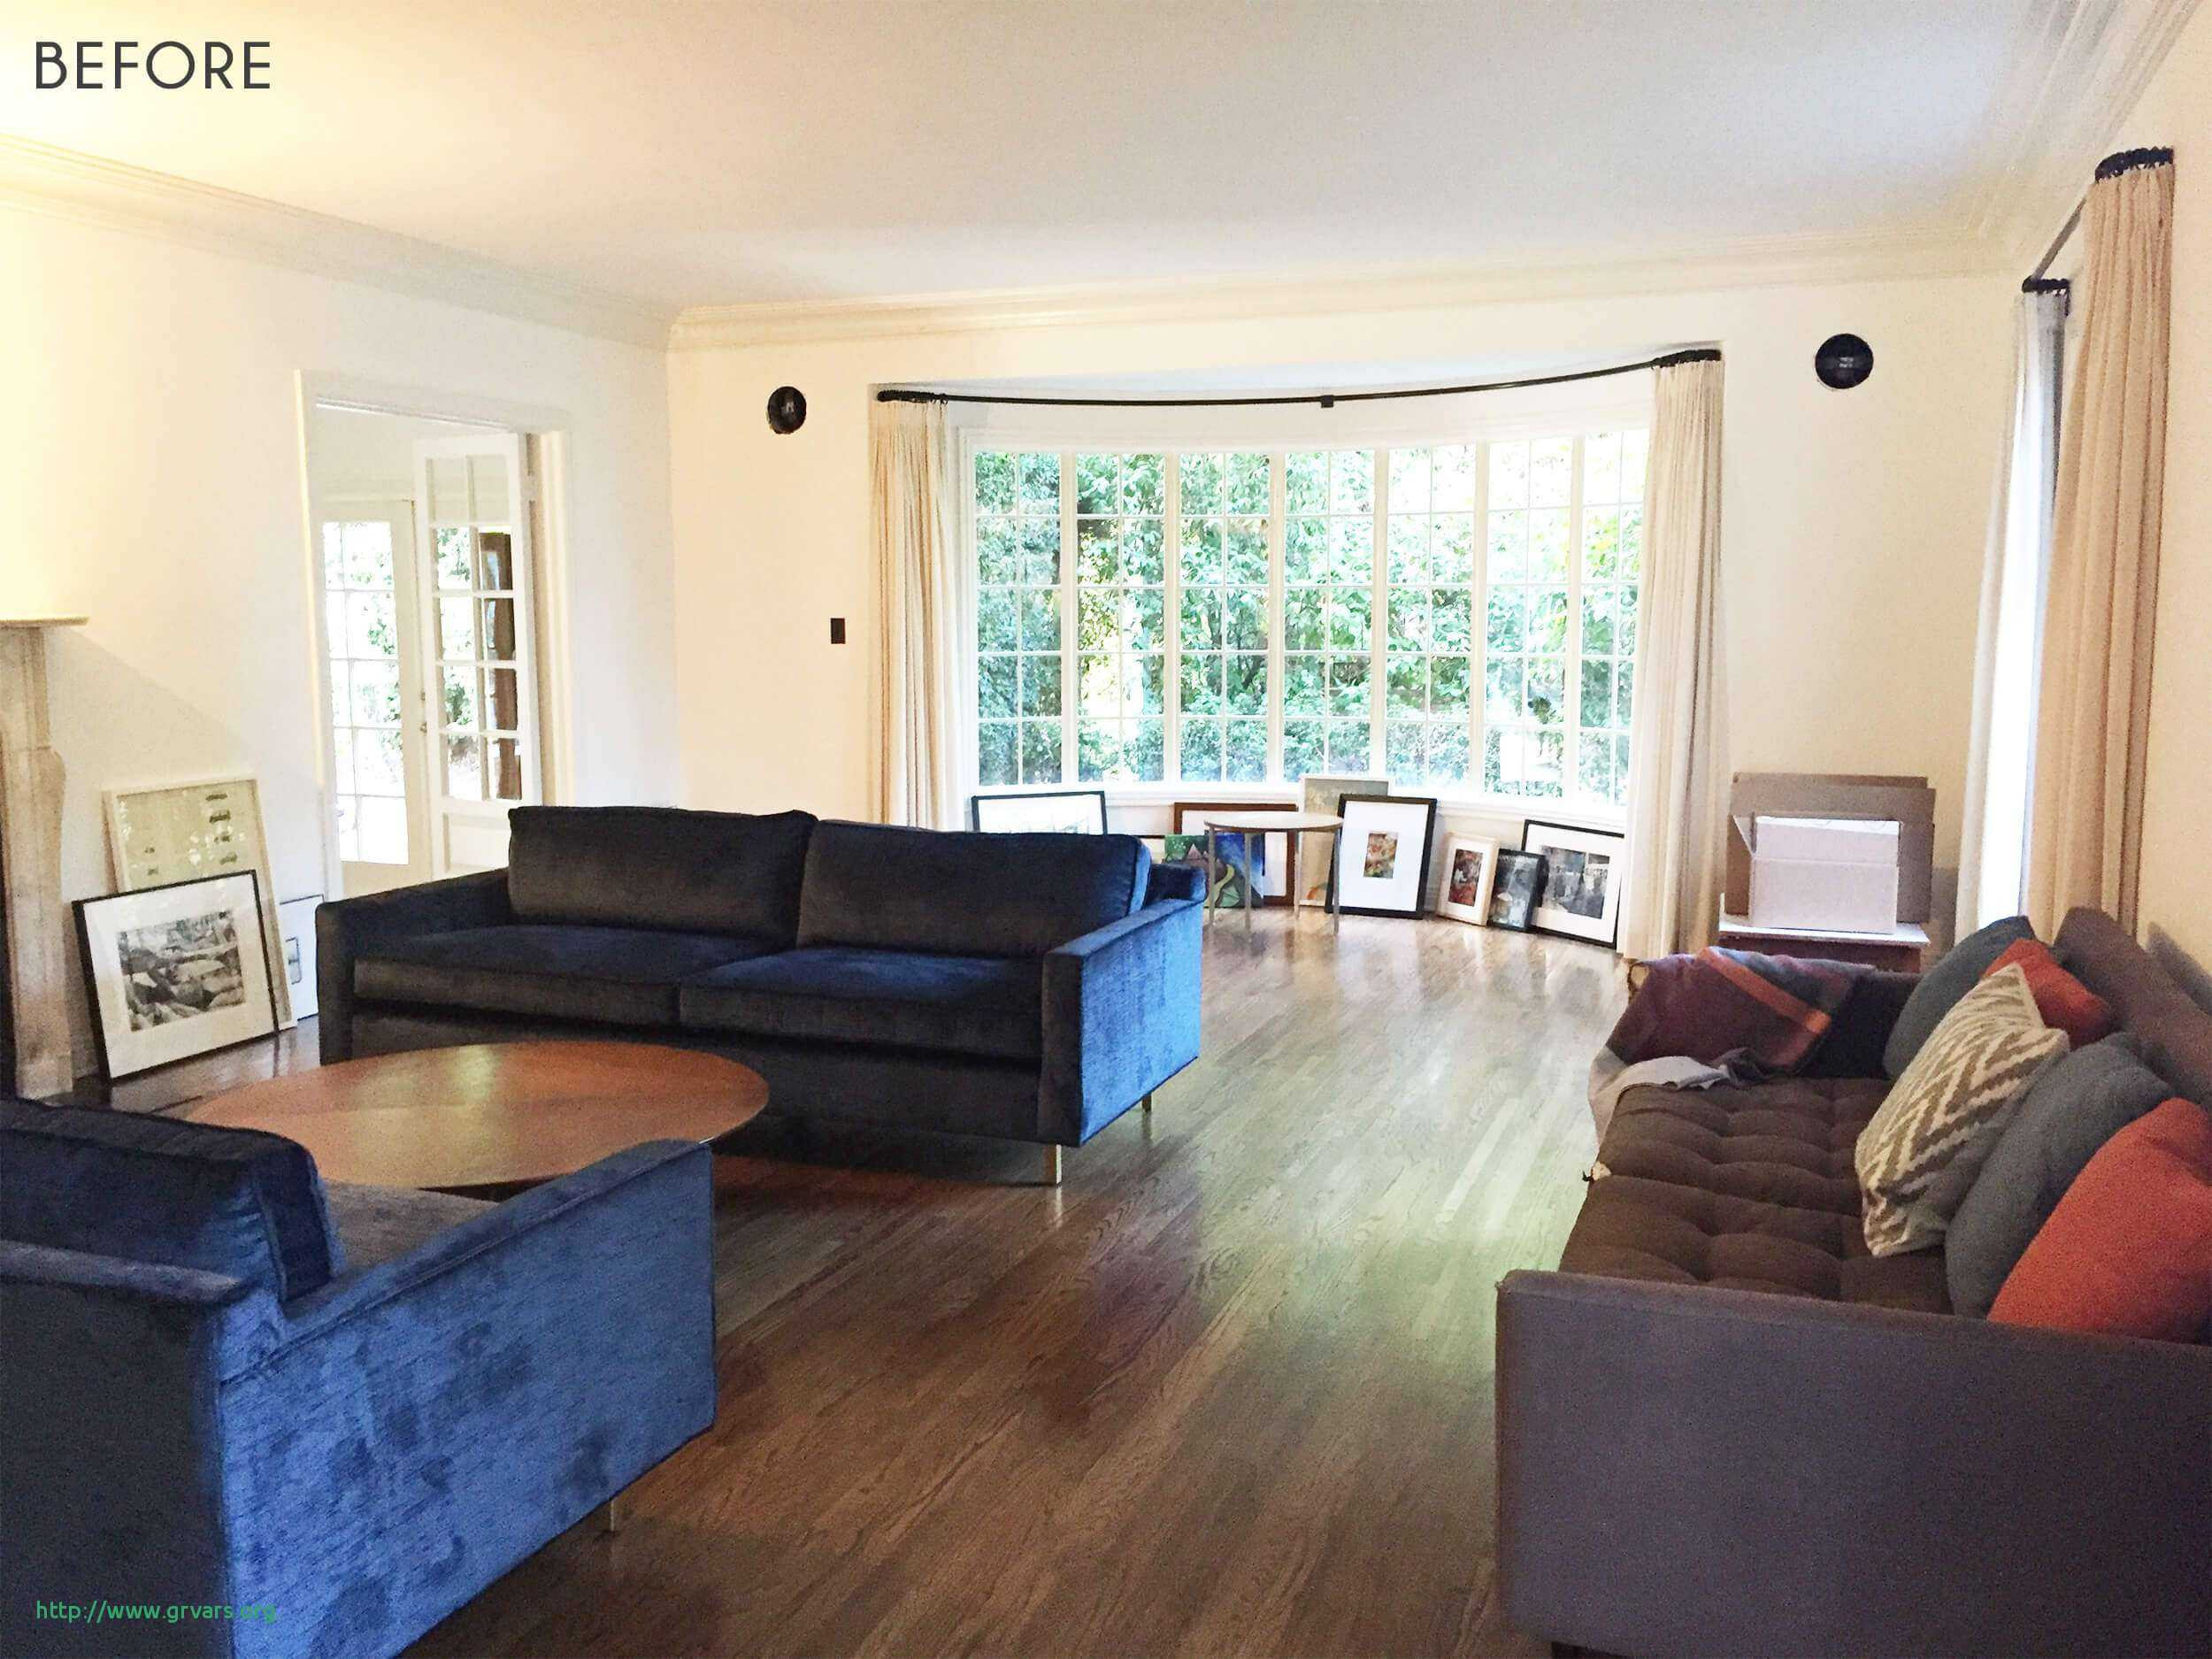 30 Unique Best Hardwood Flooring for Contemporary Homes 2021 free download best hardwood flooring for contemporary homes of 19 charmant what is the best flooring for bedrooms ideas blog with modern bedroom decor awesome living room traditional decorating ideas awes